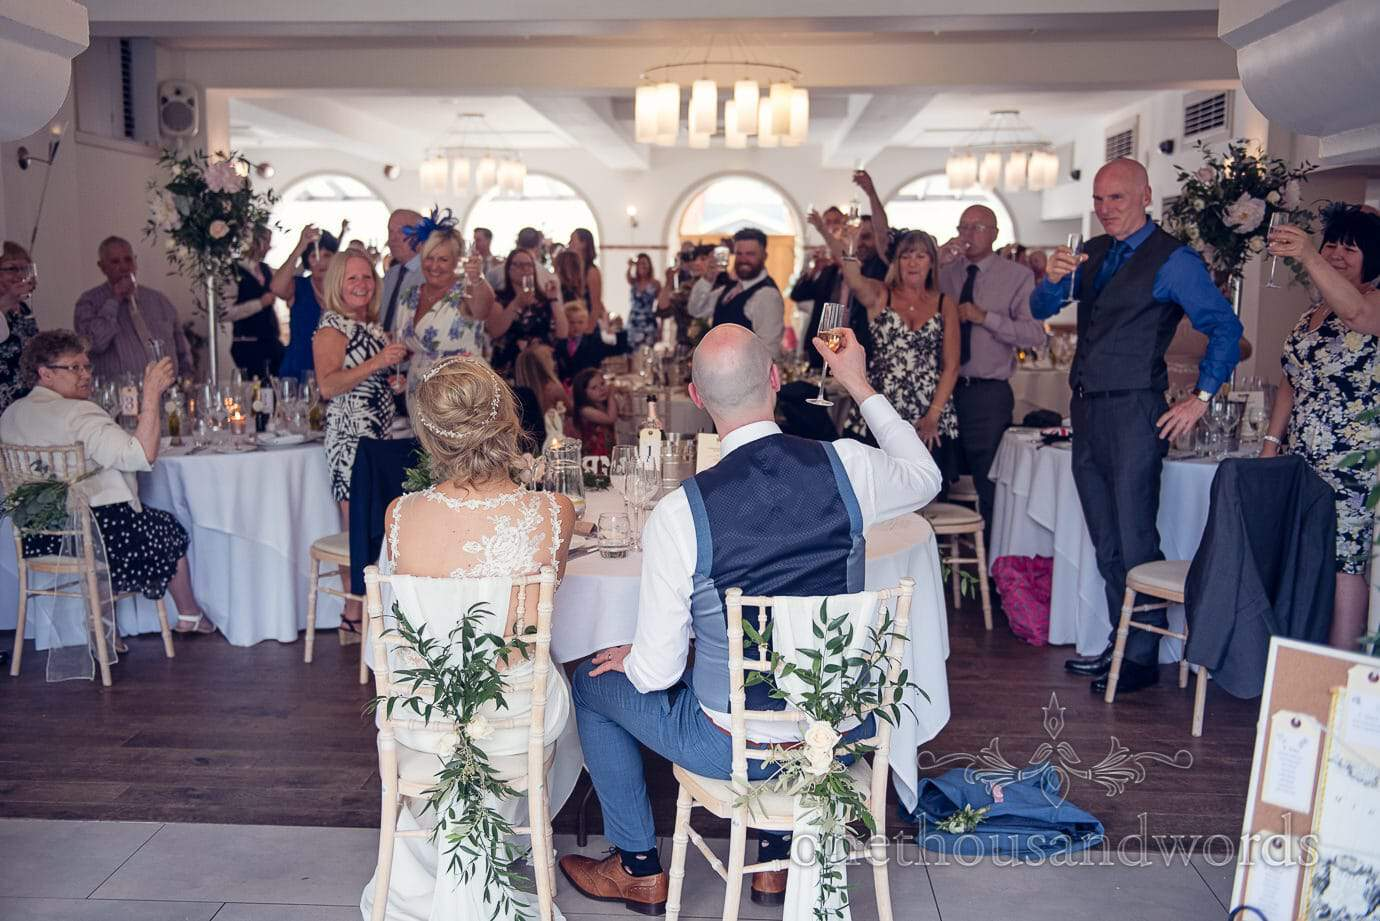 Guests toast the bride and groom at Italian Villa Wedding Photographs